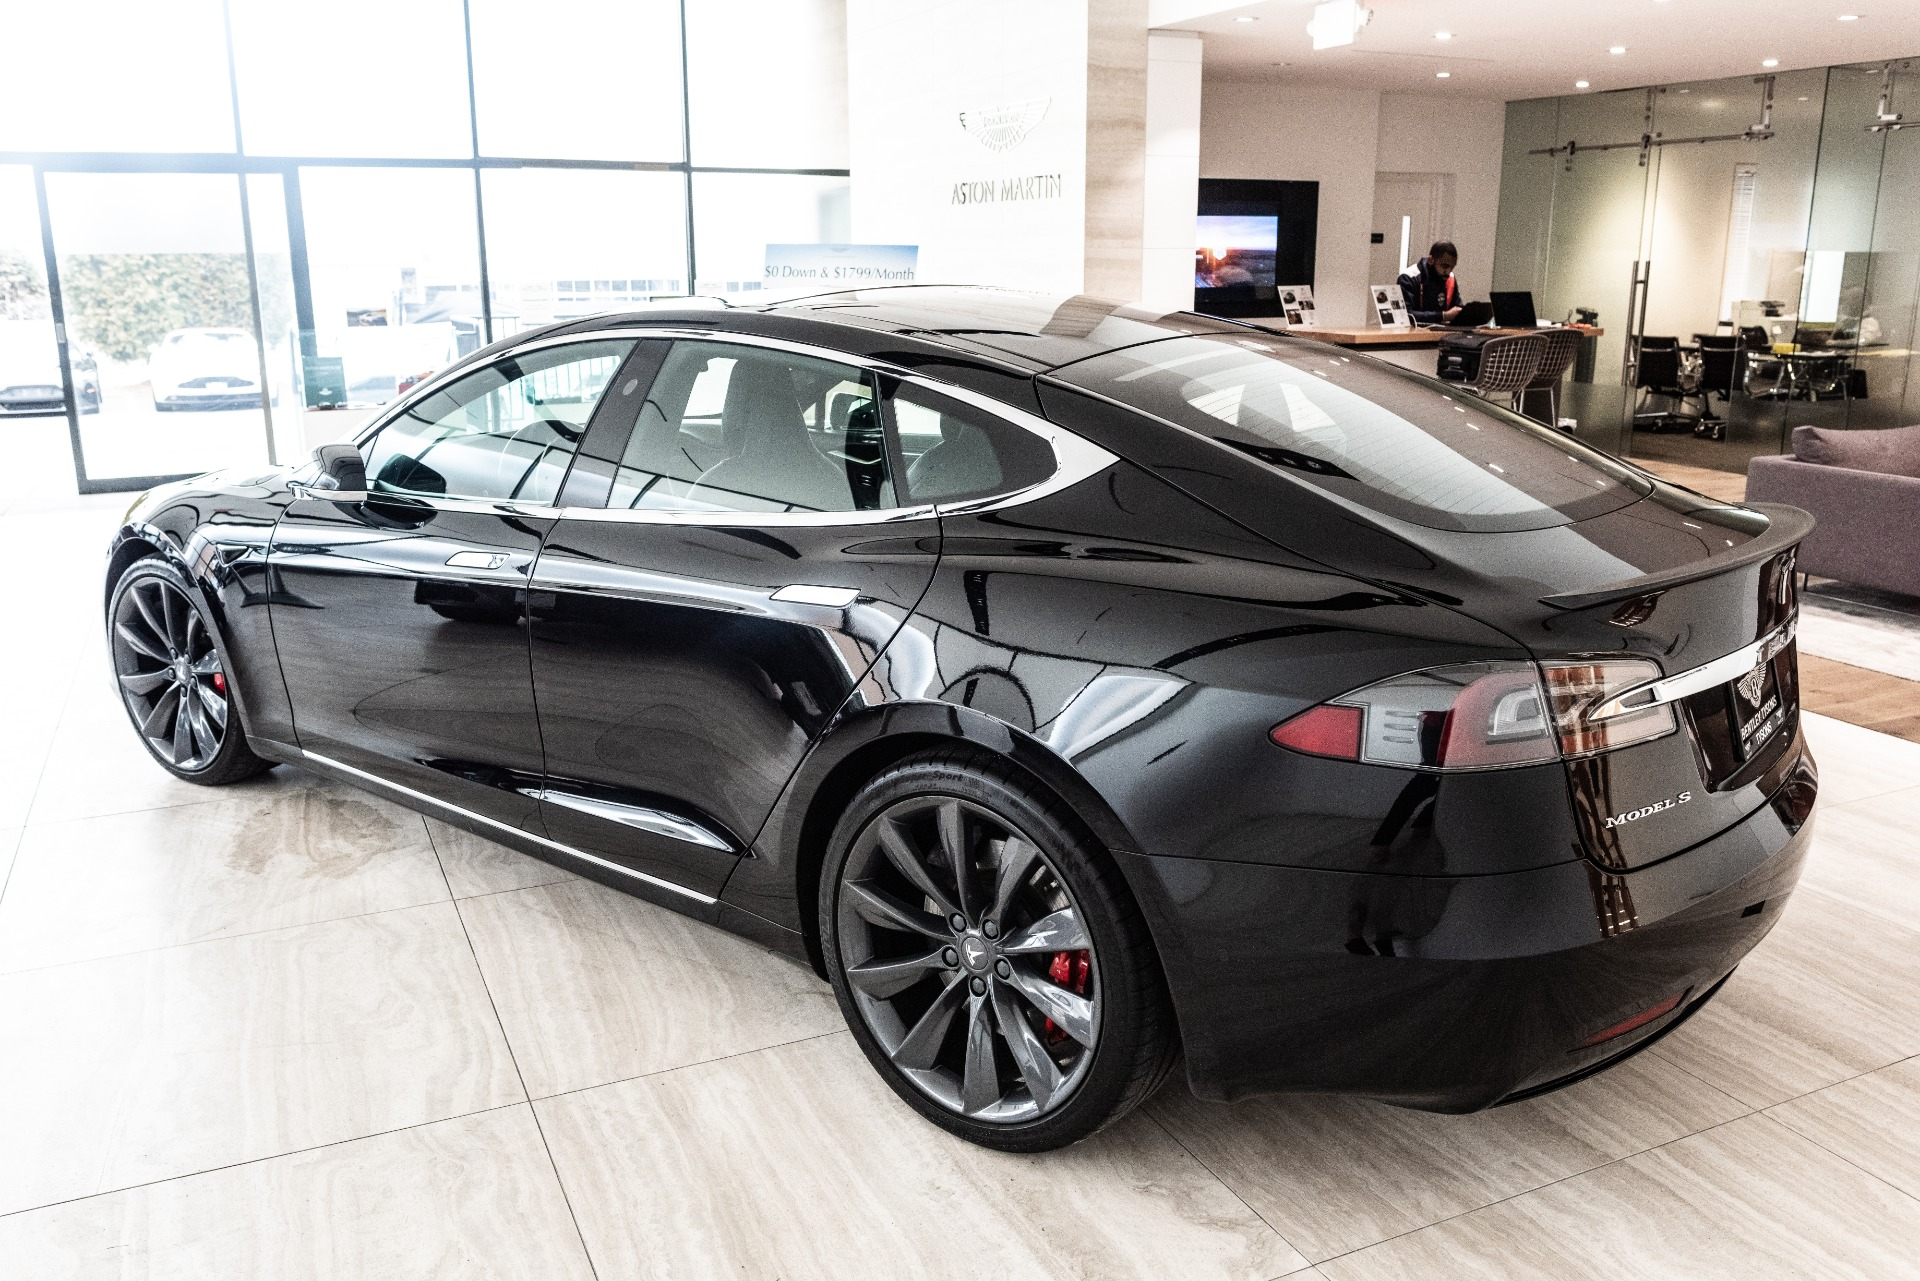 Used Rims For Sale Near Me >> 2016 Tesla Model S P100D Stock # P102928A for sale near ...